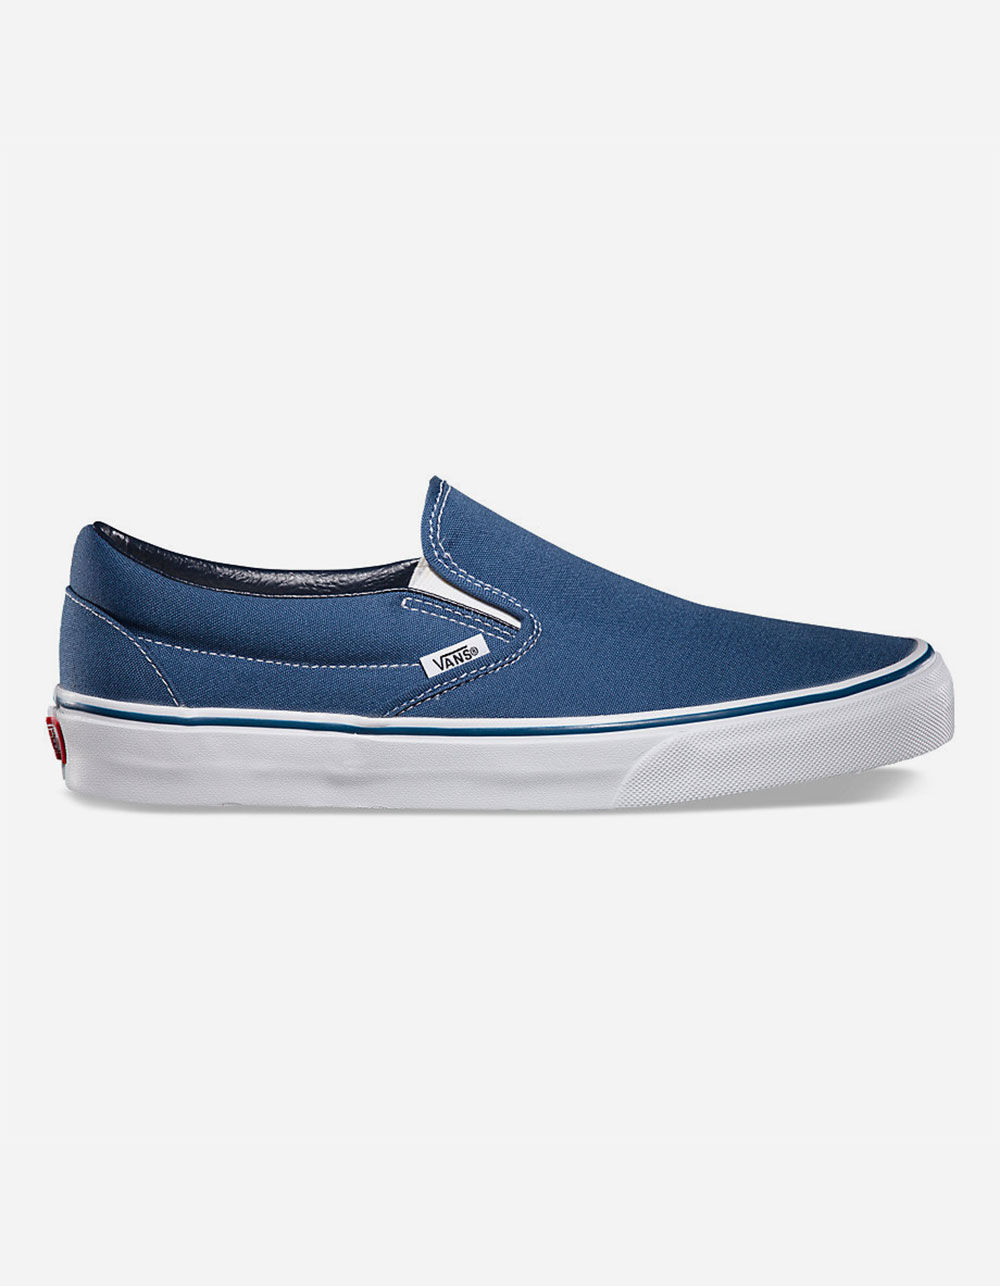 VANS CLASSIC SLIP-ON NAVY SHOES